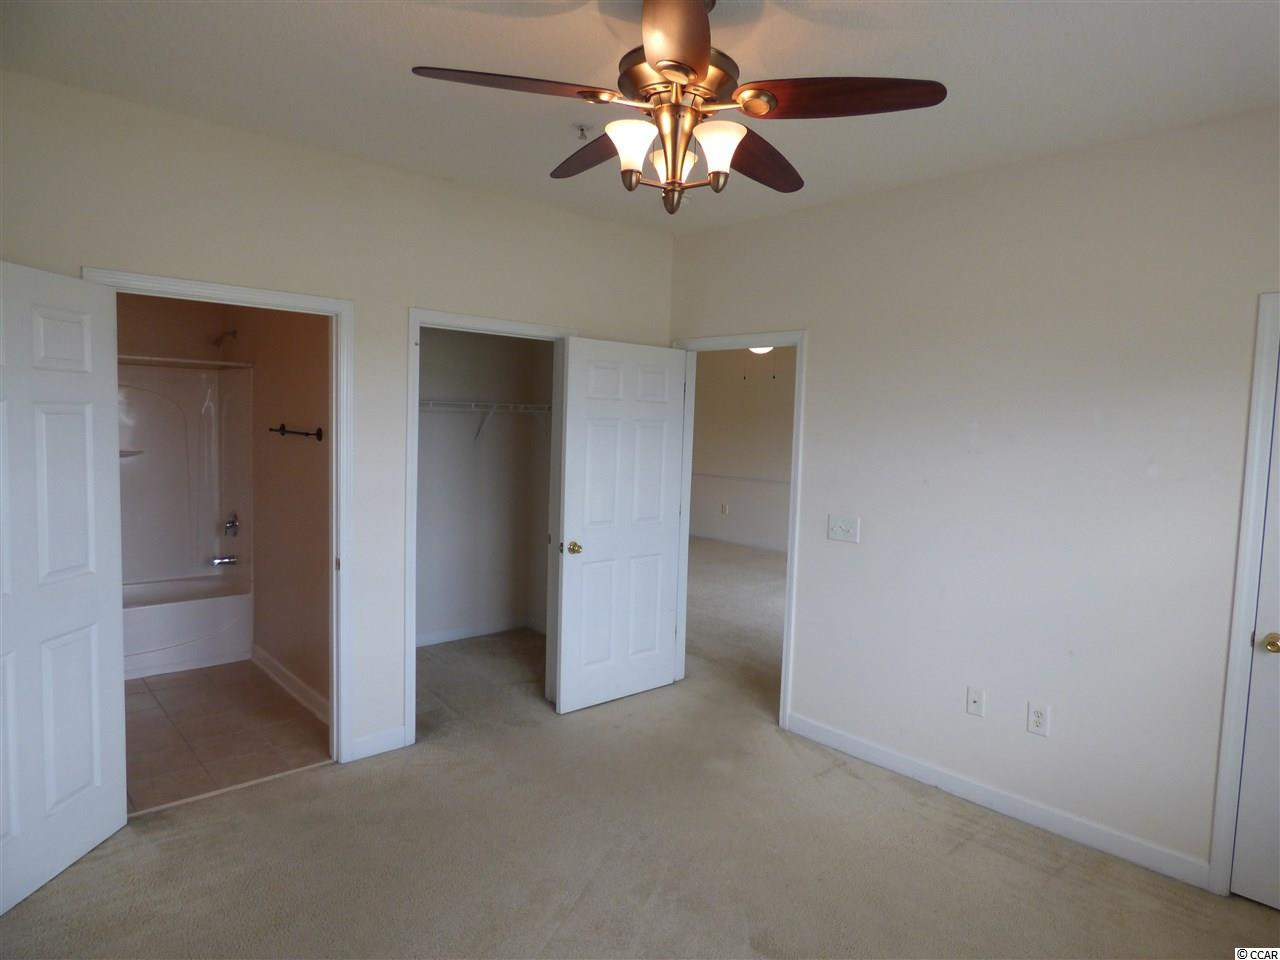 This 2 bedroom condo at  Kiskadee Parke is currently for sale